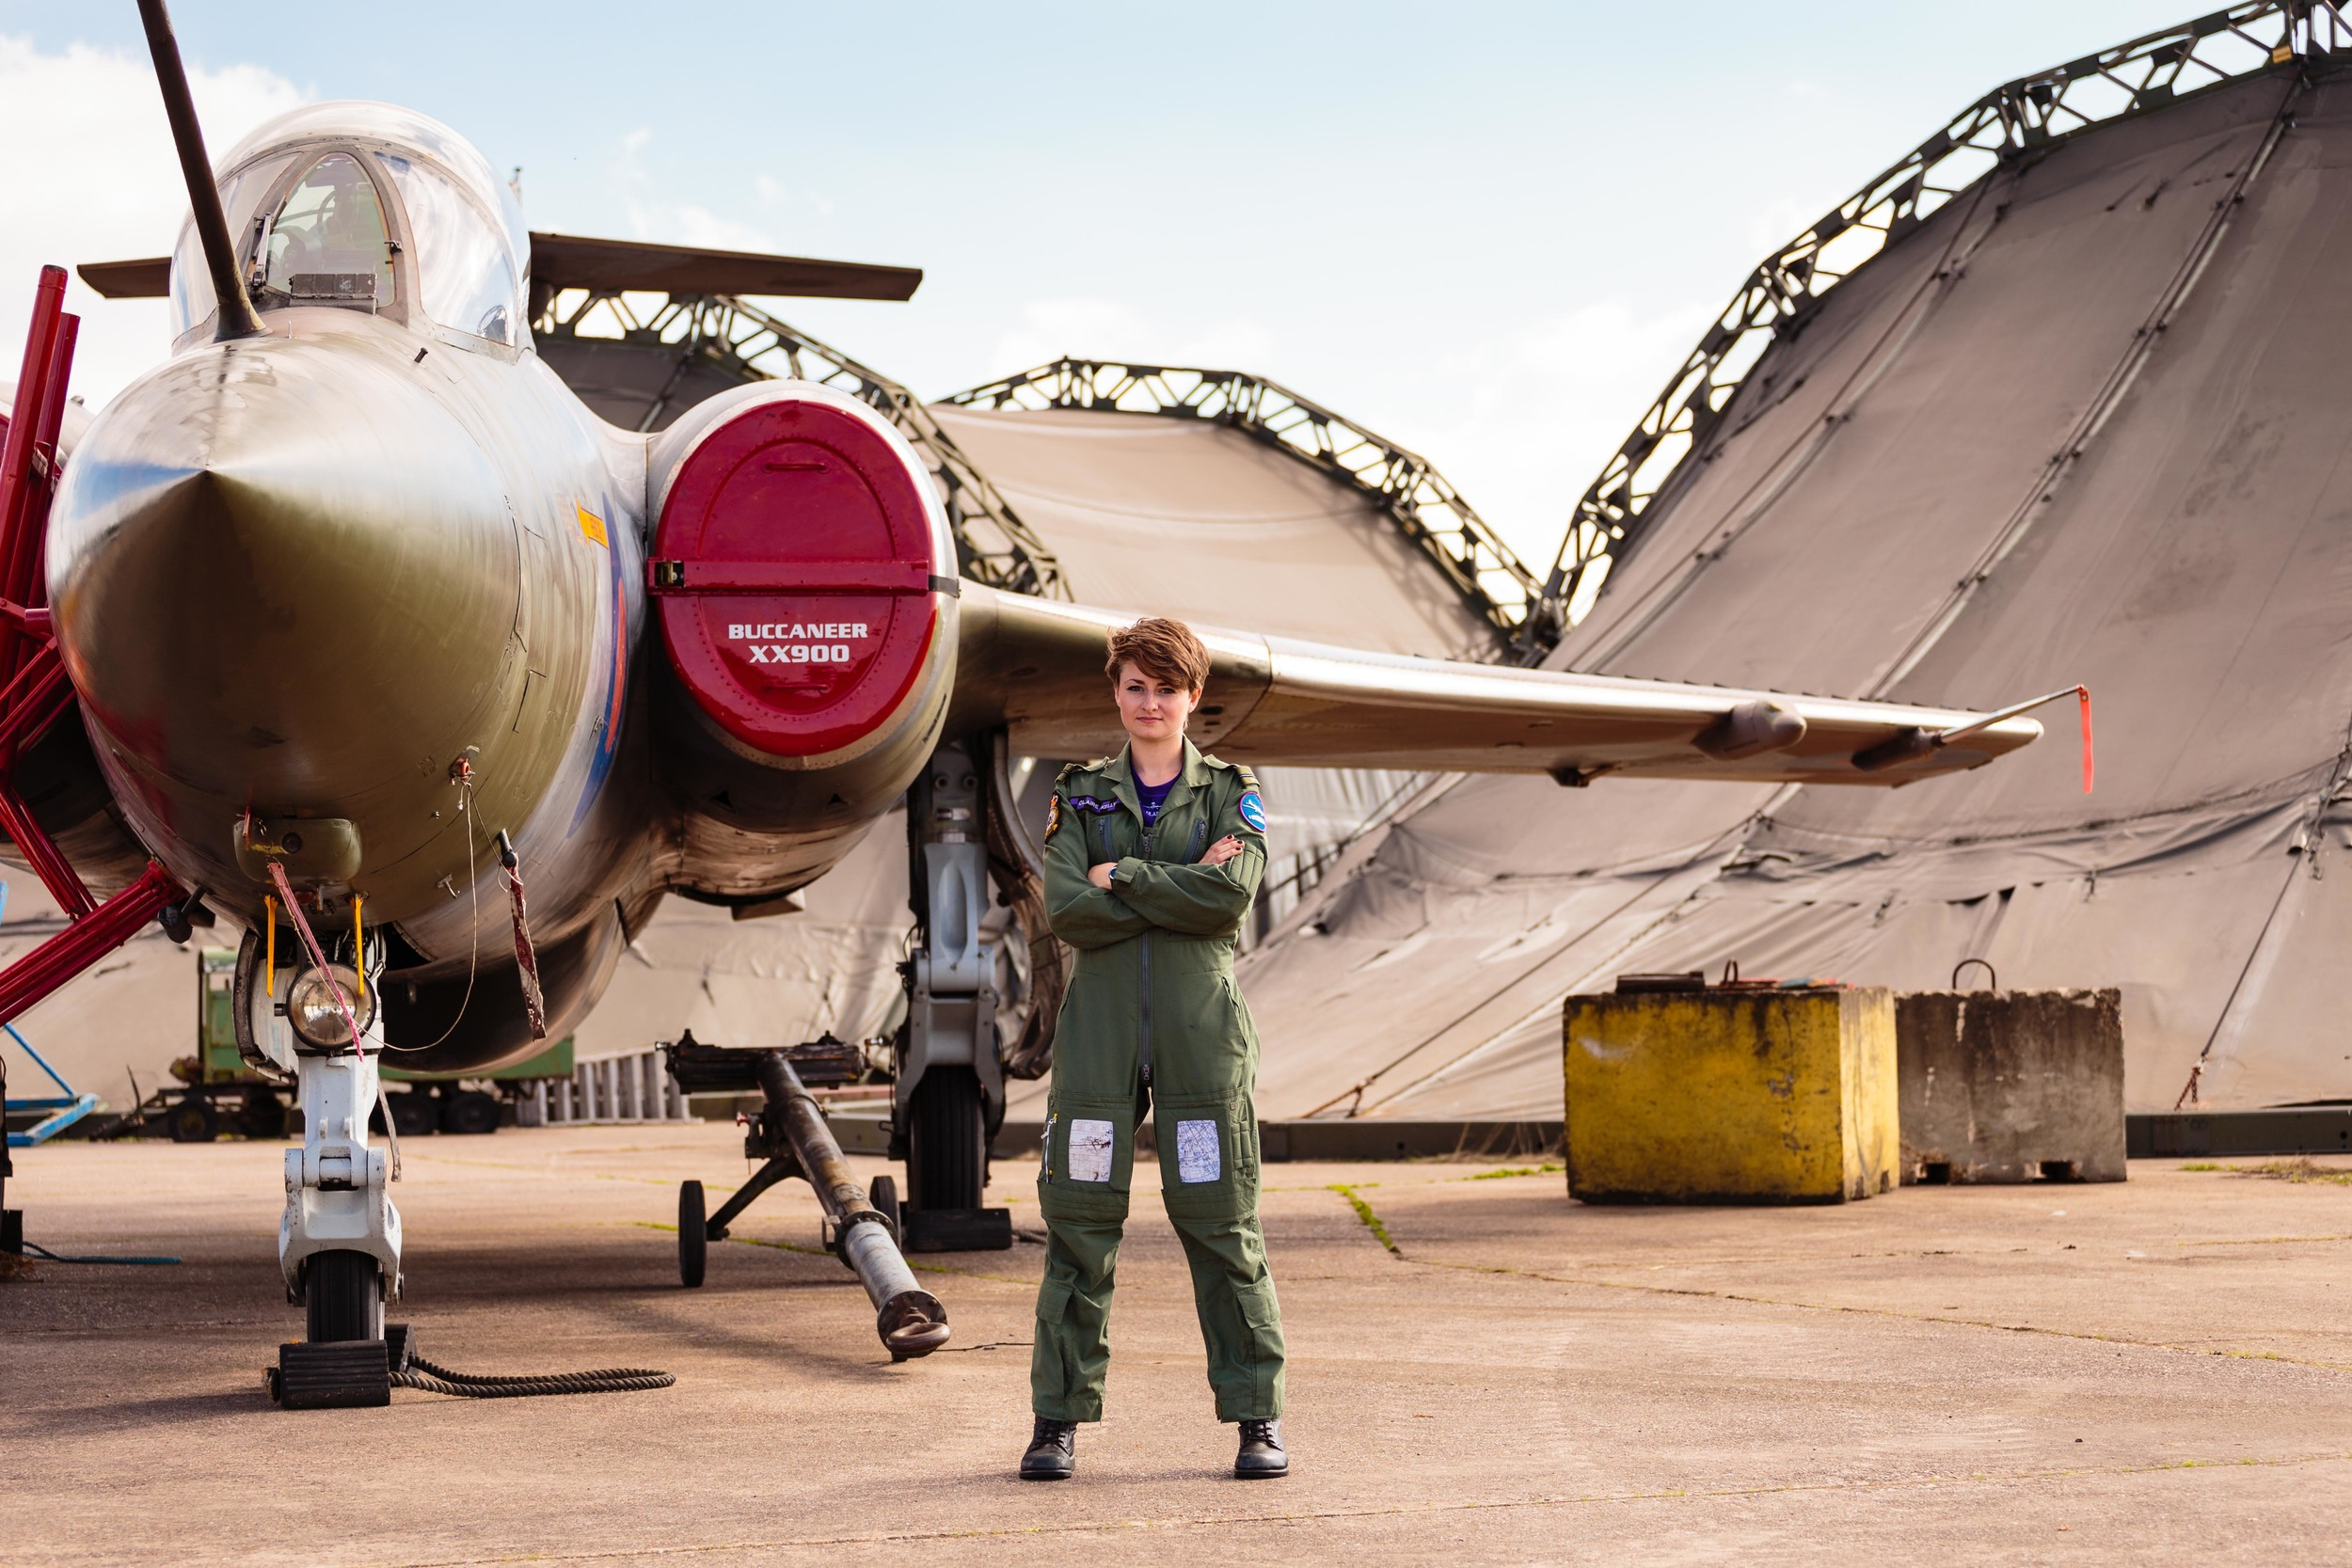 Claire Kelly with a Buccaneer jet